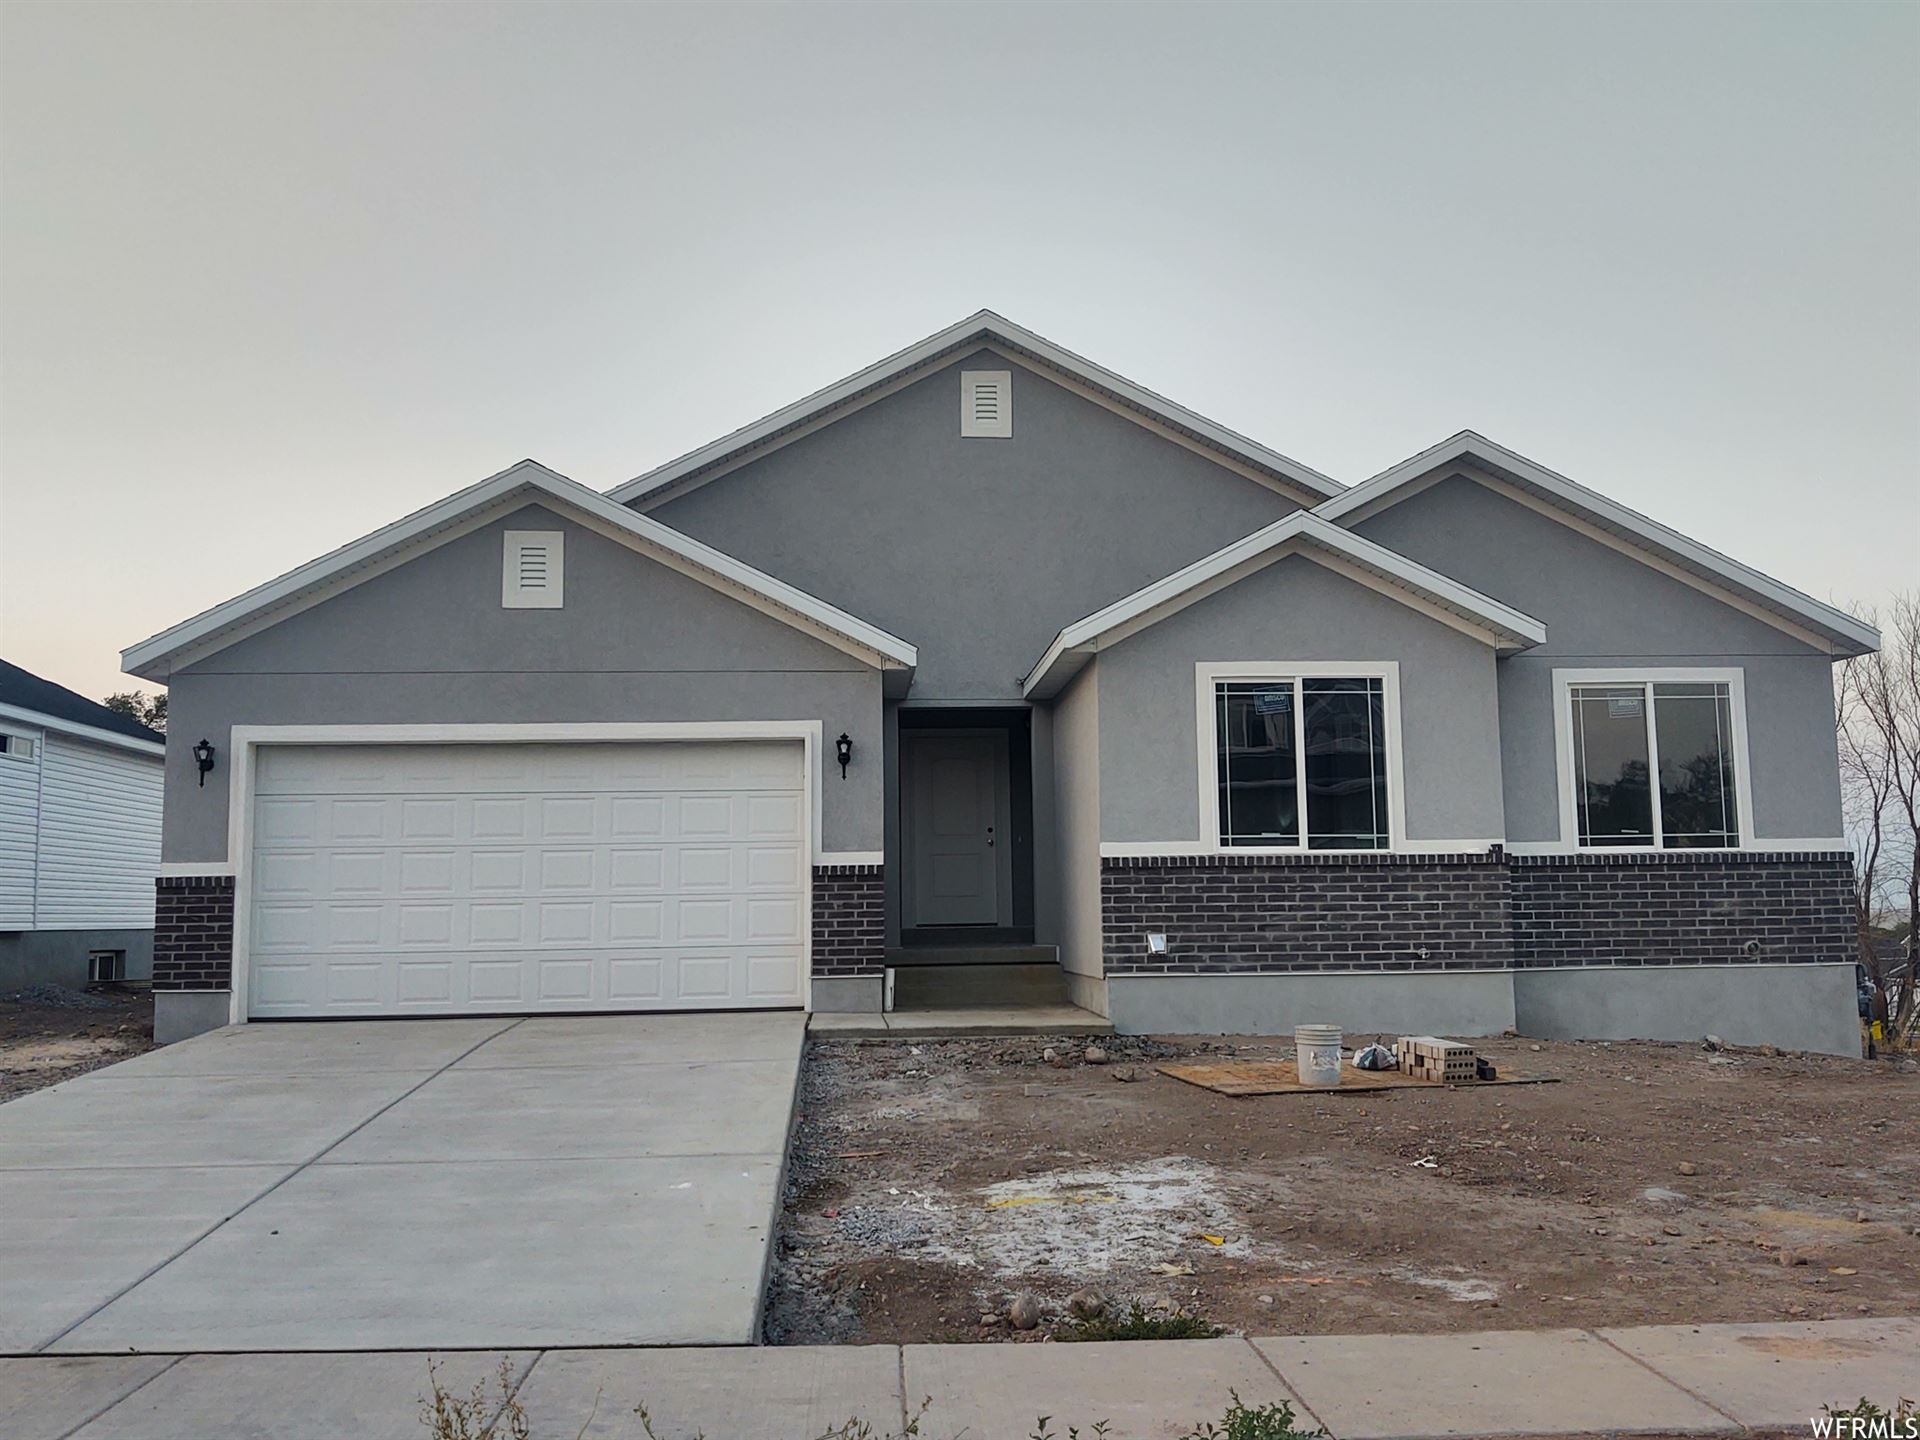 Photo of 8997 W NEW HOUSE DR #516, Magna, UT 84044 (MLS # 1753322)